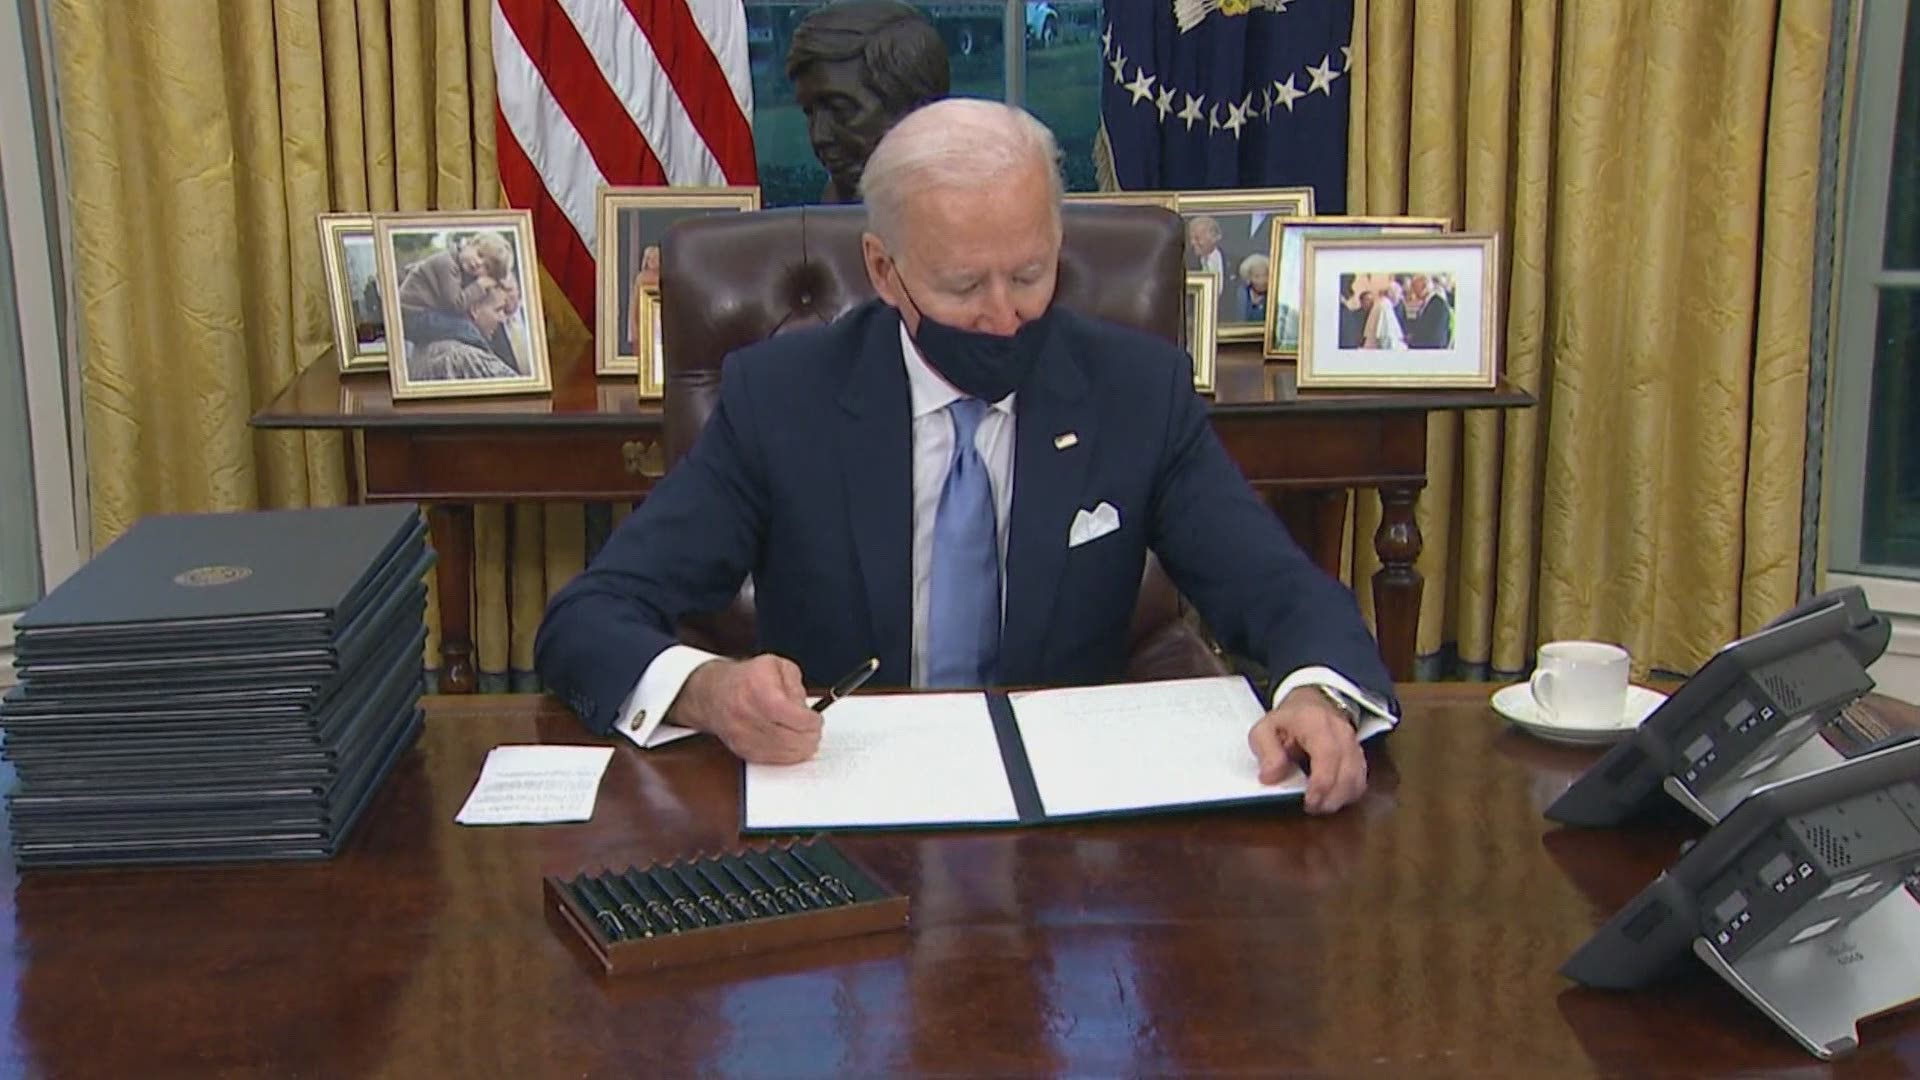 President Joe Biden signs executive orders on COVID-19, immigration,  climate change and more | wfaa.com